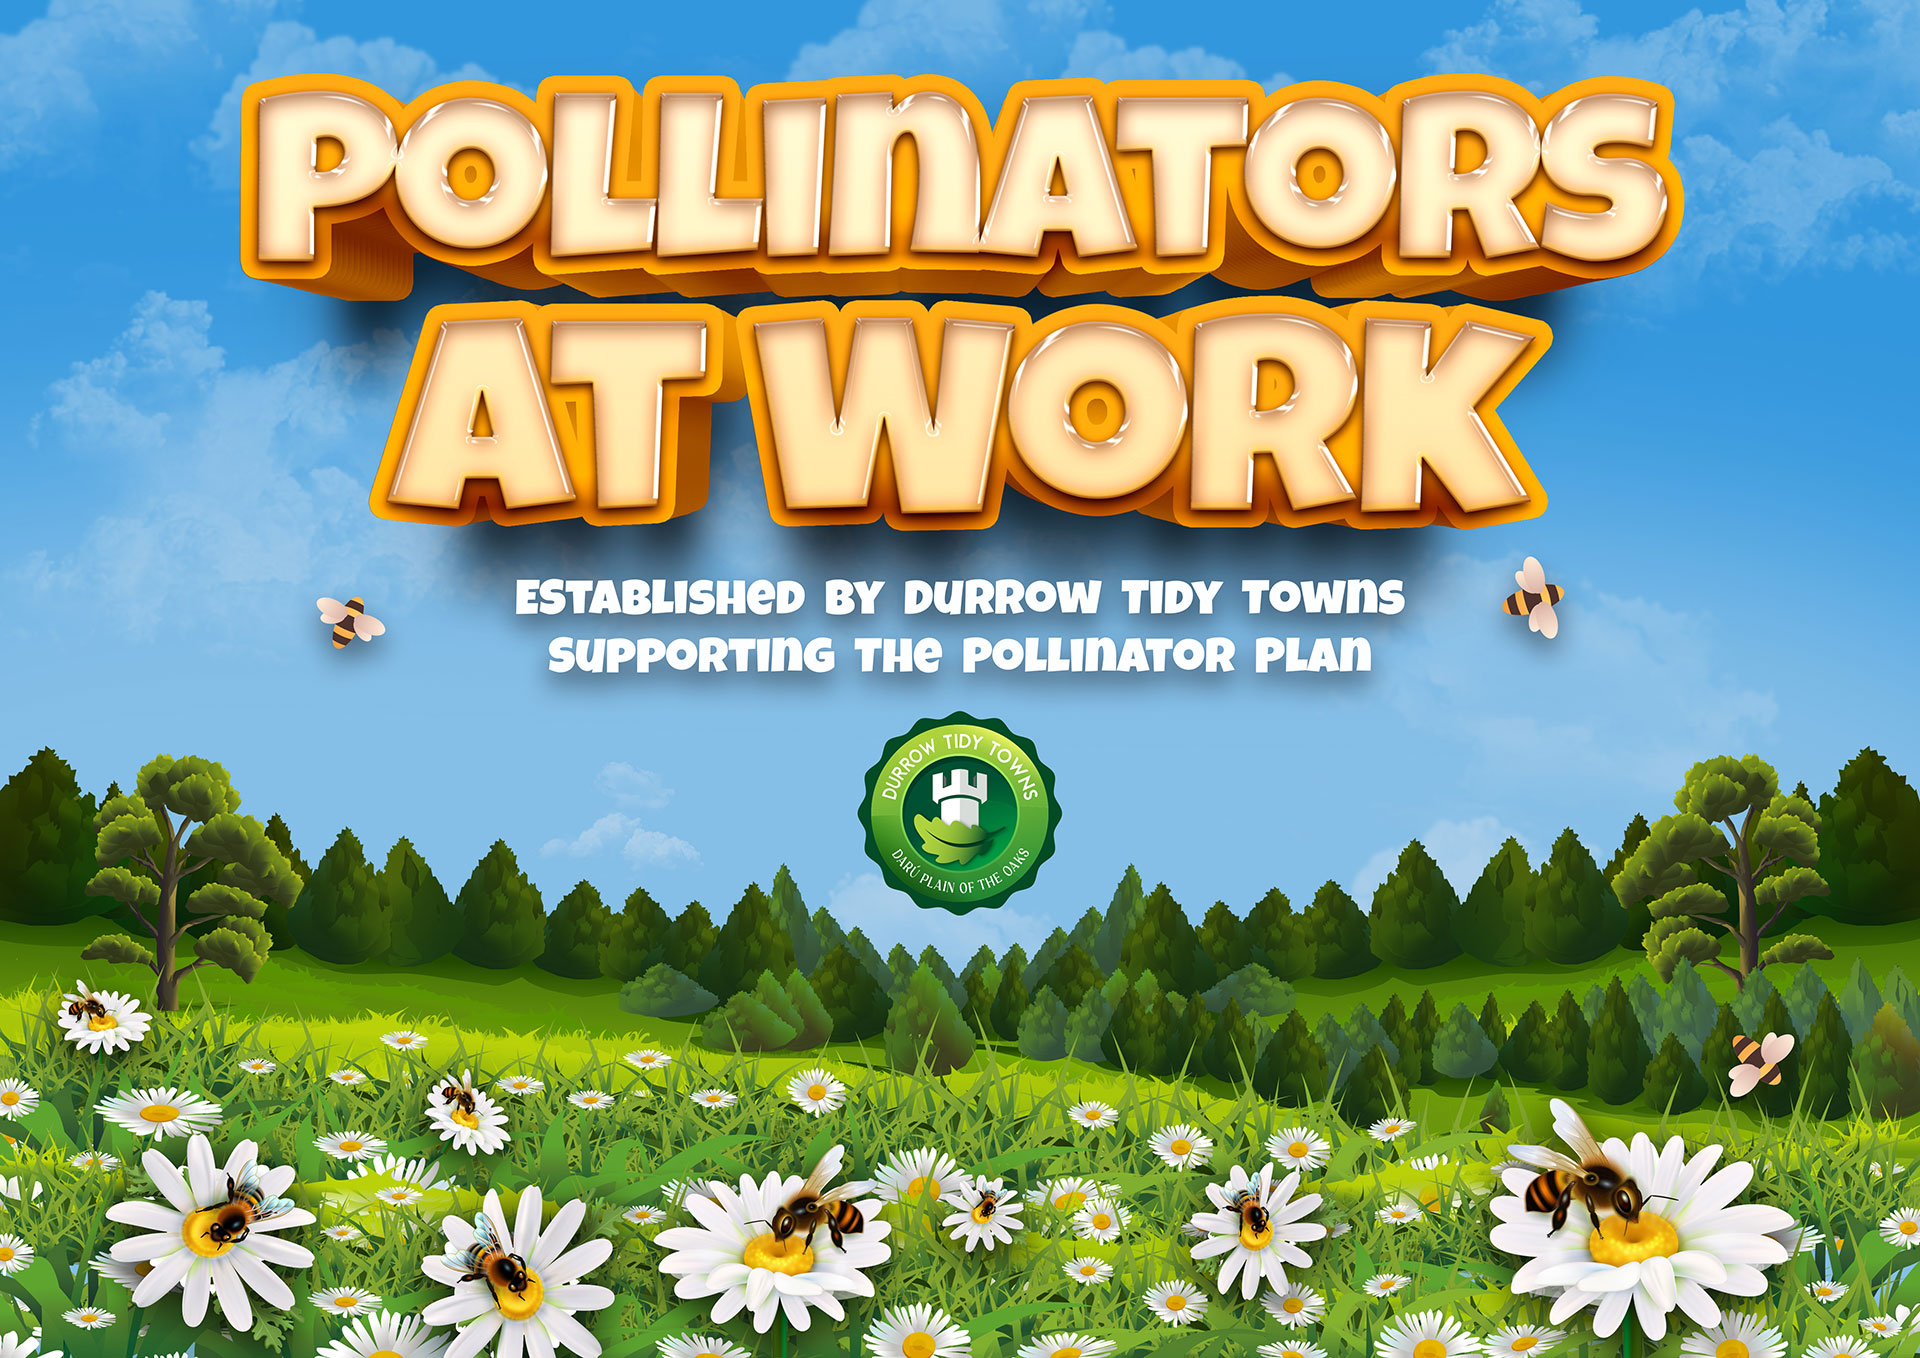 Bio diversity poster showing bees on flowers in a meadow, Pollinators at work.